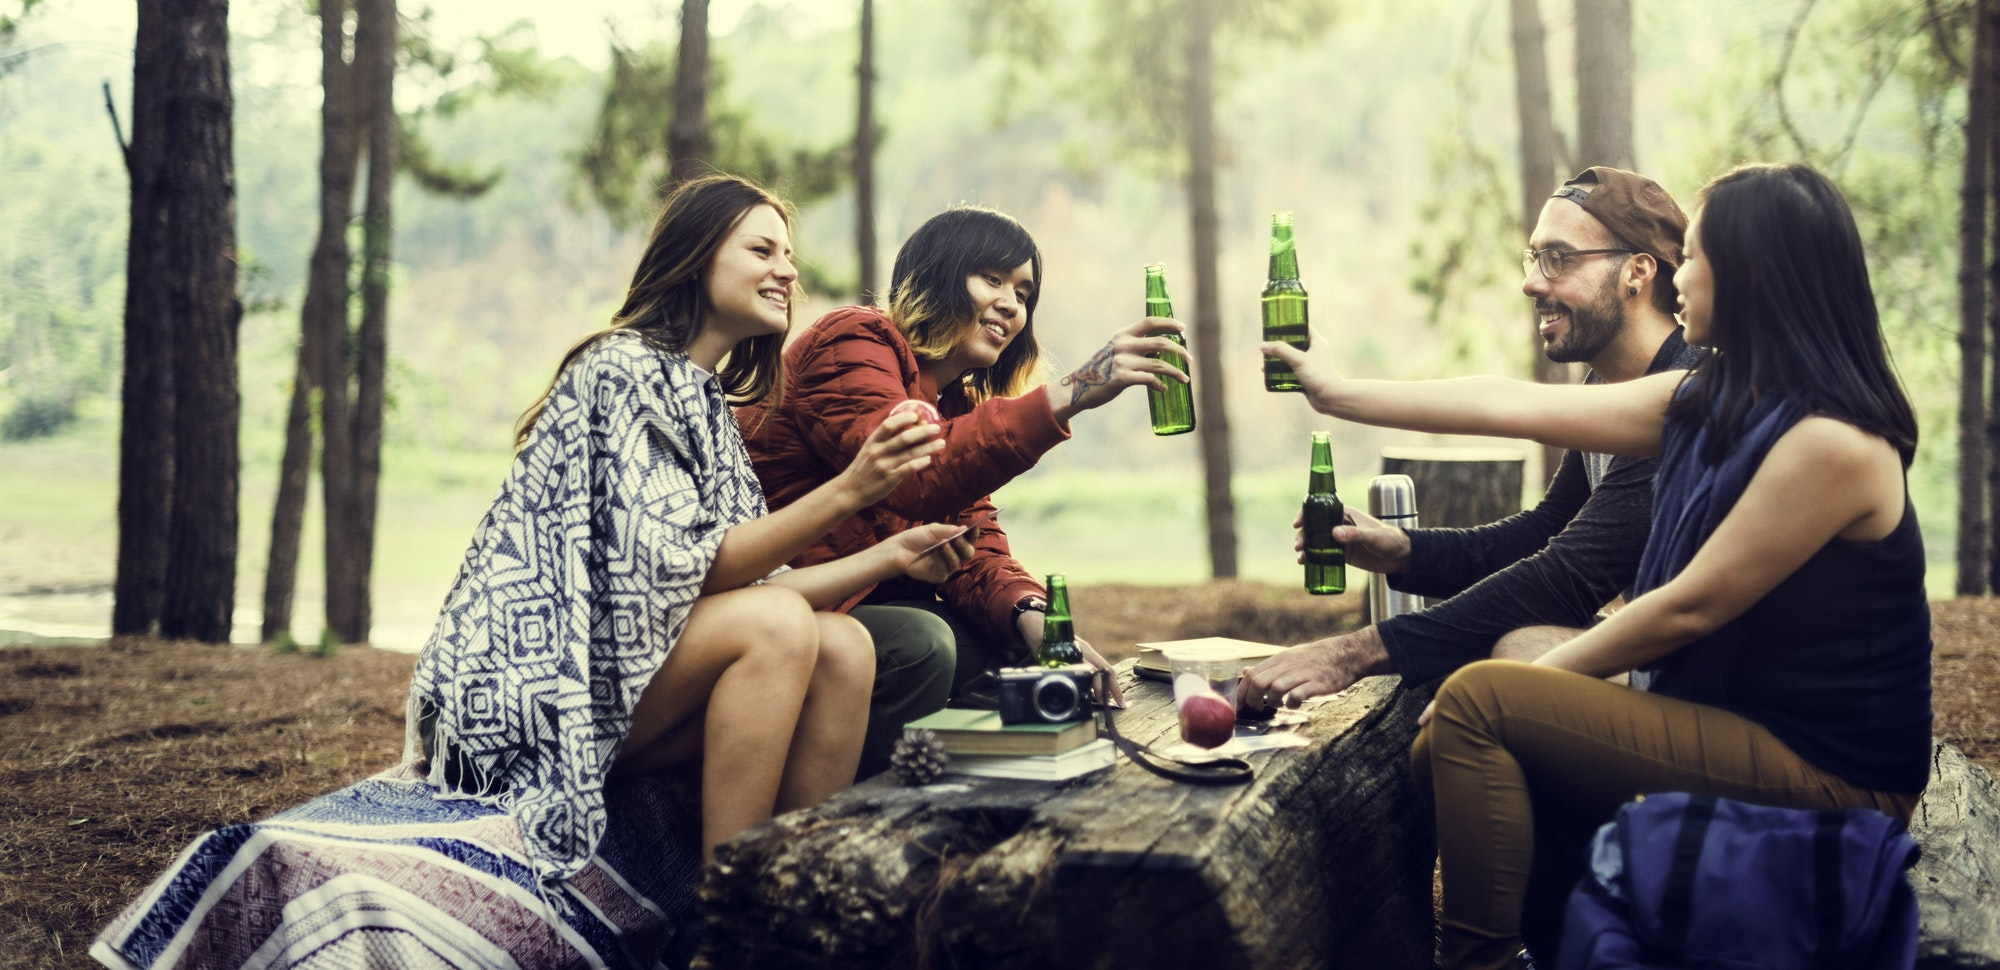 6 Alcoholic Beverage Trends We're Seeing in 2021